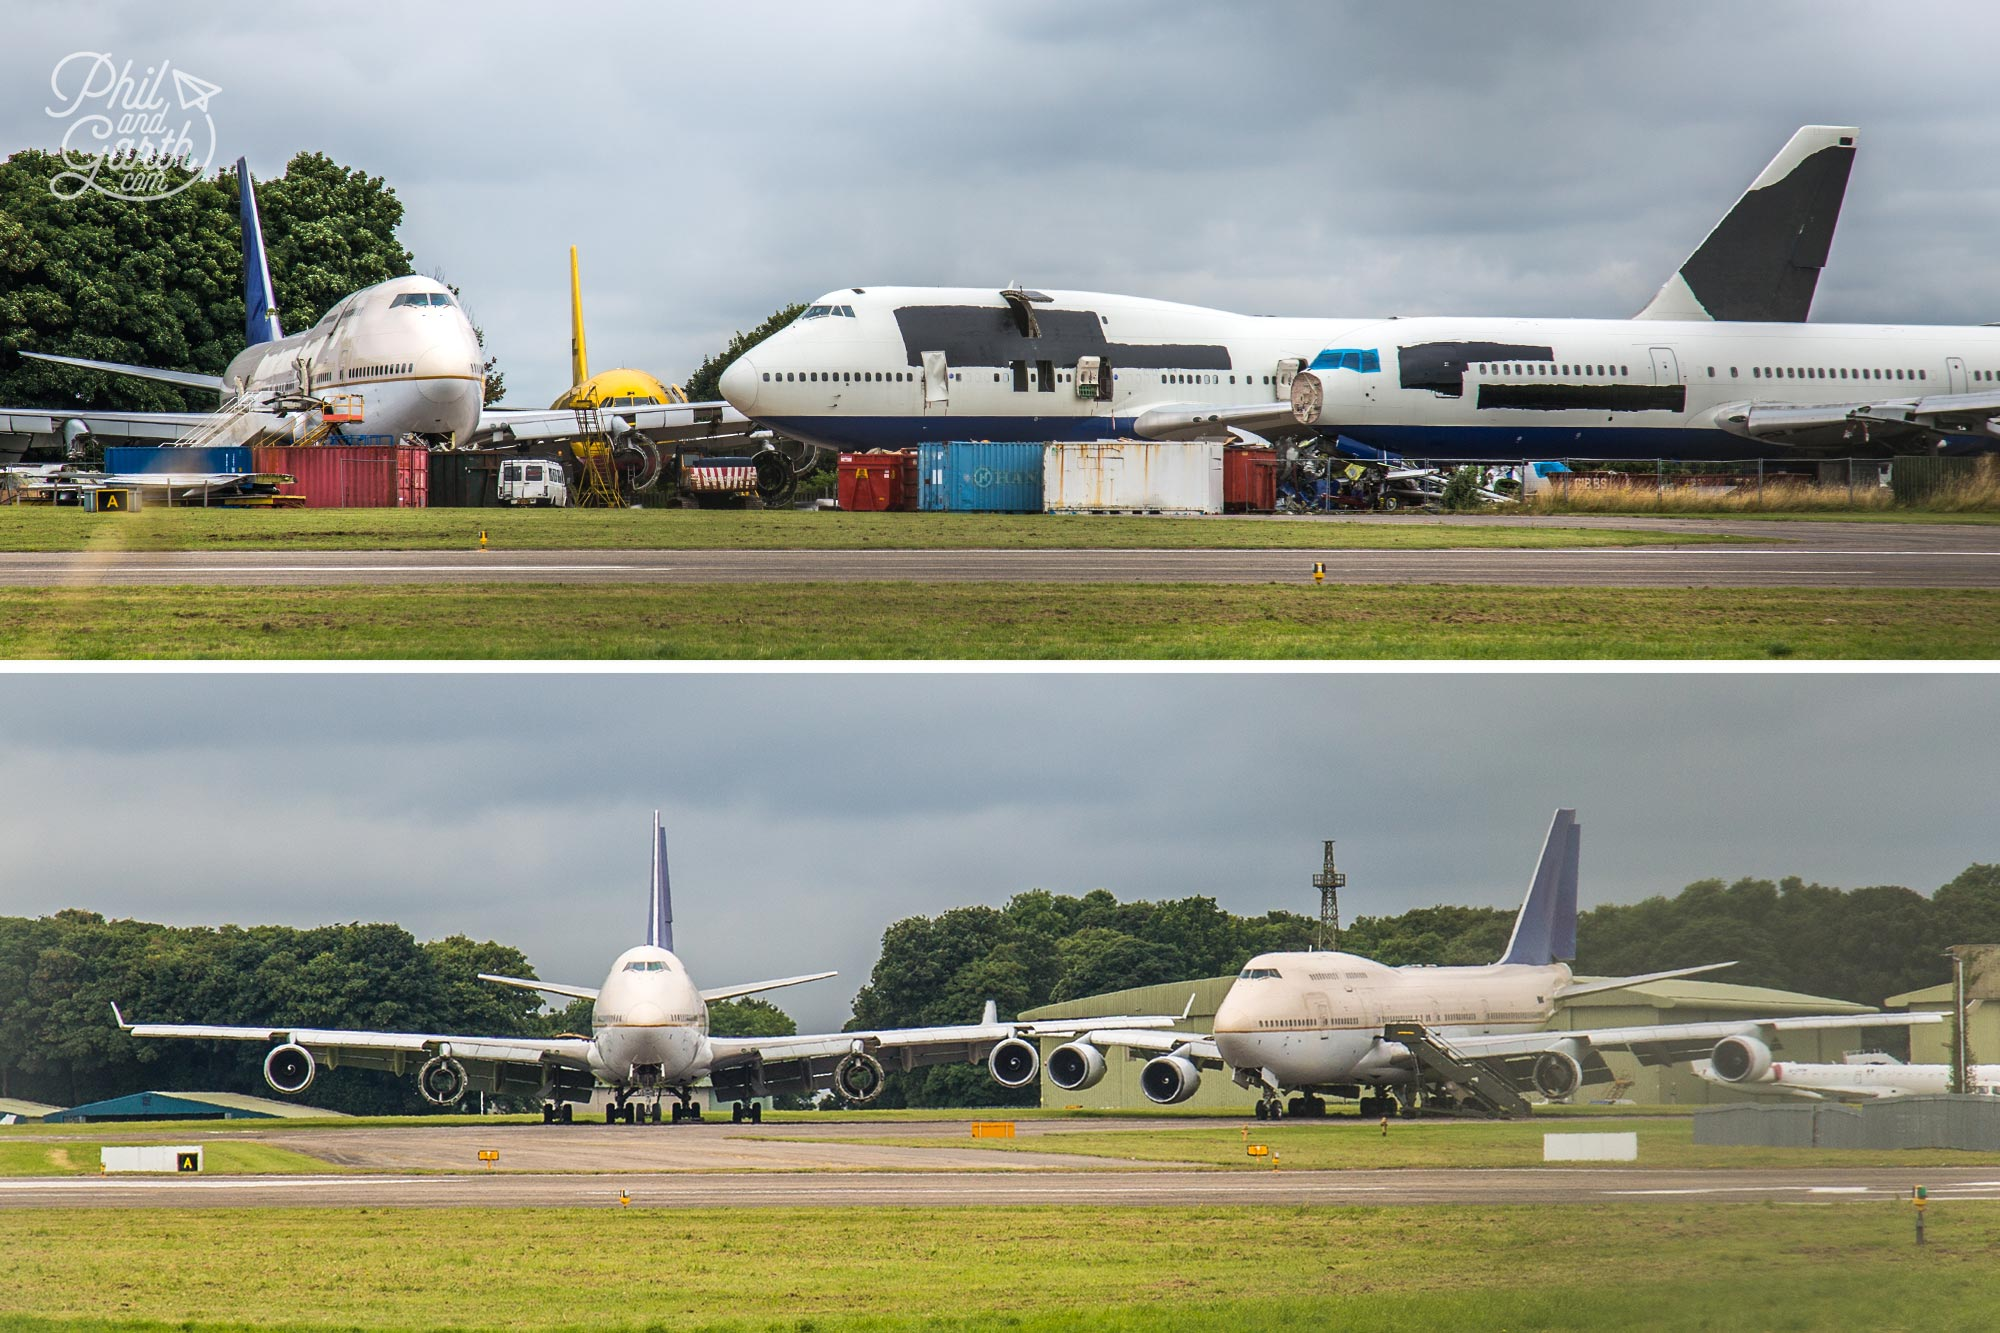 Boeing 747s at the airplane graveyard at Cotswolds Airport